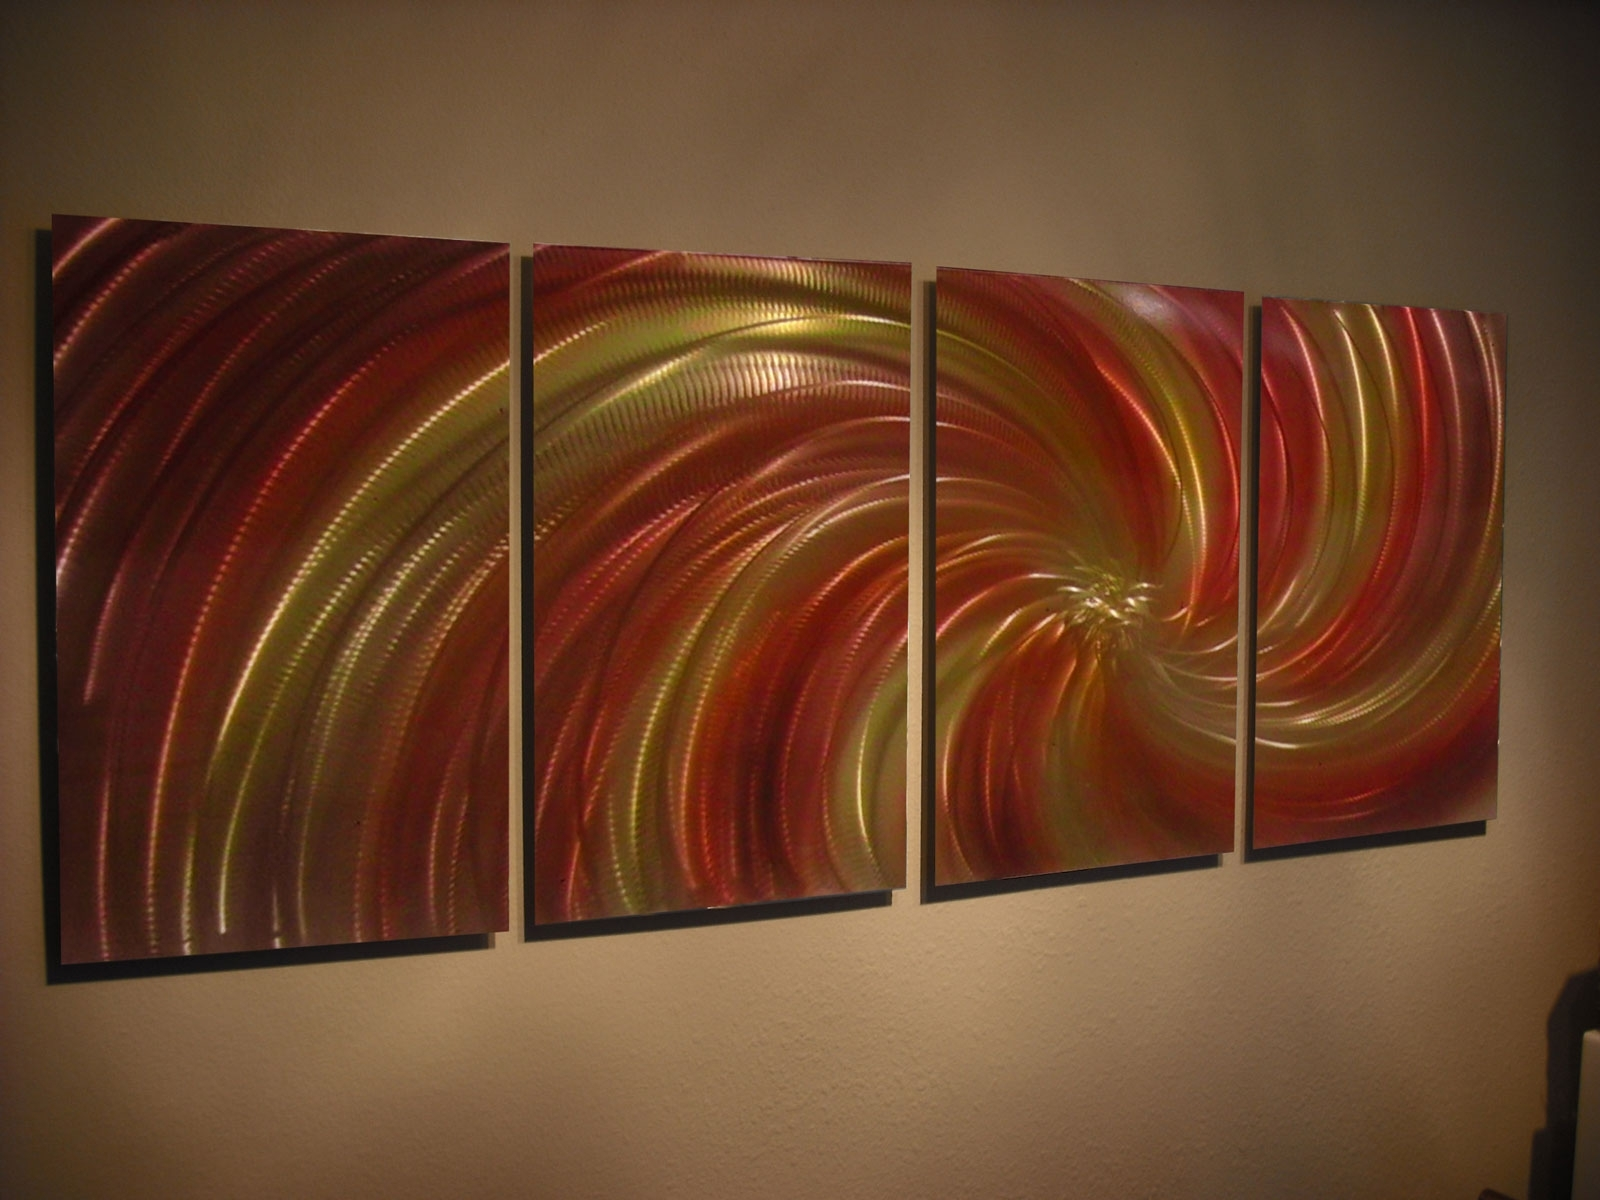 Harvest – Abstract Metal Wall Art Contemporary Modern Decor Regarding 2018 Brown Abstract Wall Art (View 13 of 20)